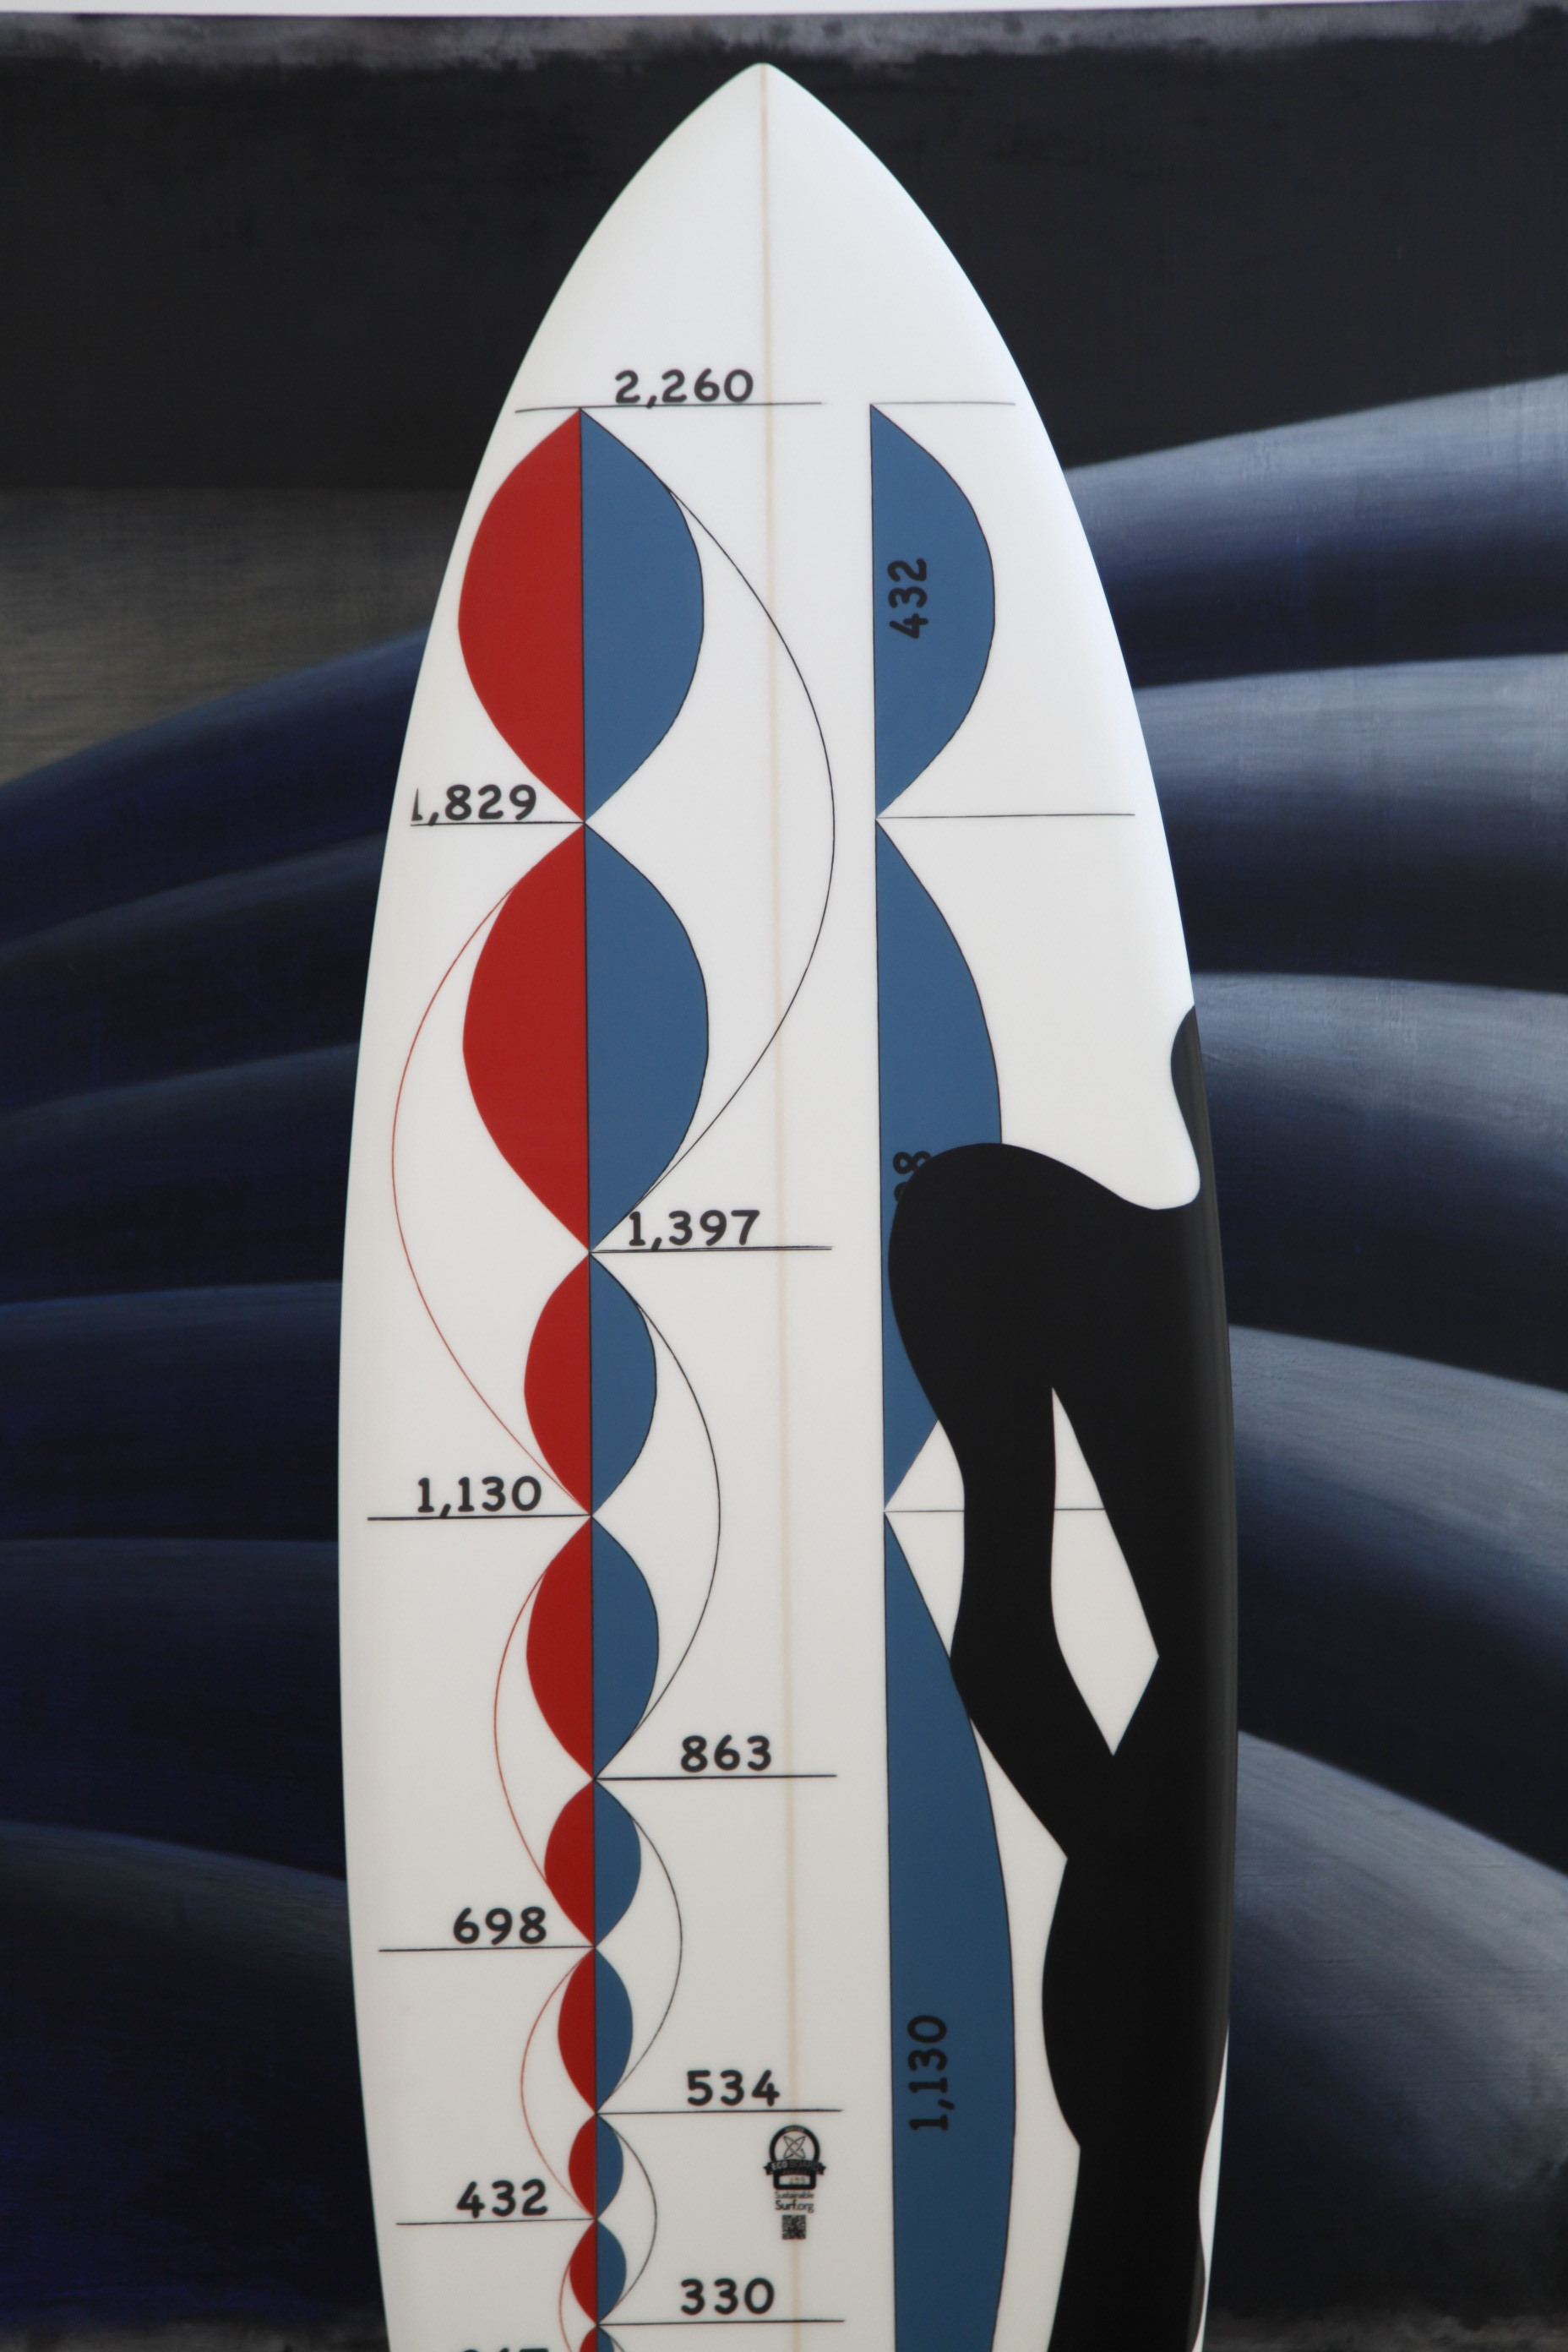 S.E.A.-Studio-Environmental-Architecture-David-Hertz-FAIA-A+D-Museum-Surfboard-Venice-Beach-California-sustainable-regenerative-restorative-green-design-Le-Corbusier-Modular-Vitruvian-Man-graphic-shortboard-recycled-bamboo-Super-Sap-biobased-custom-2.JPG